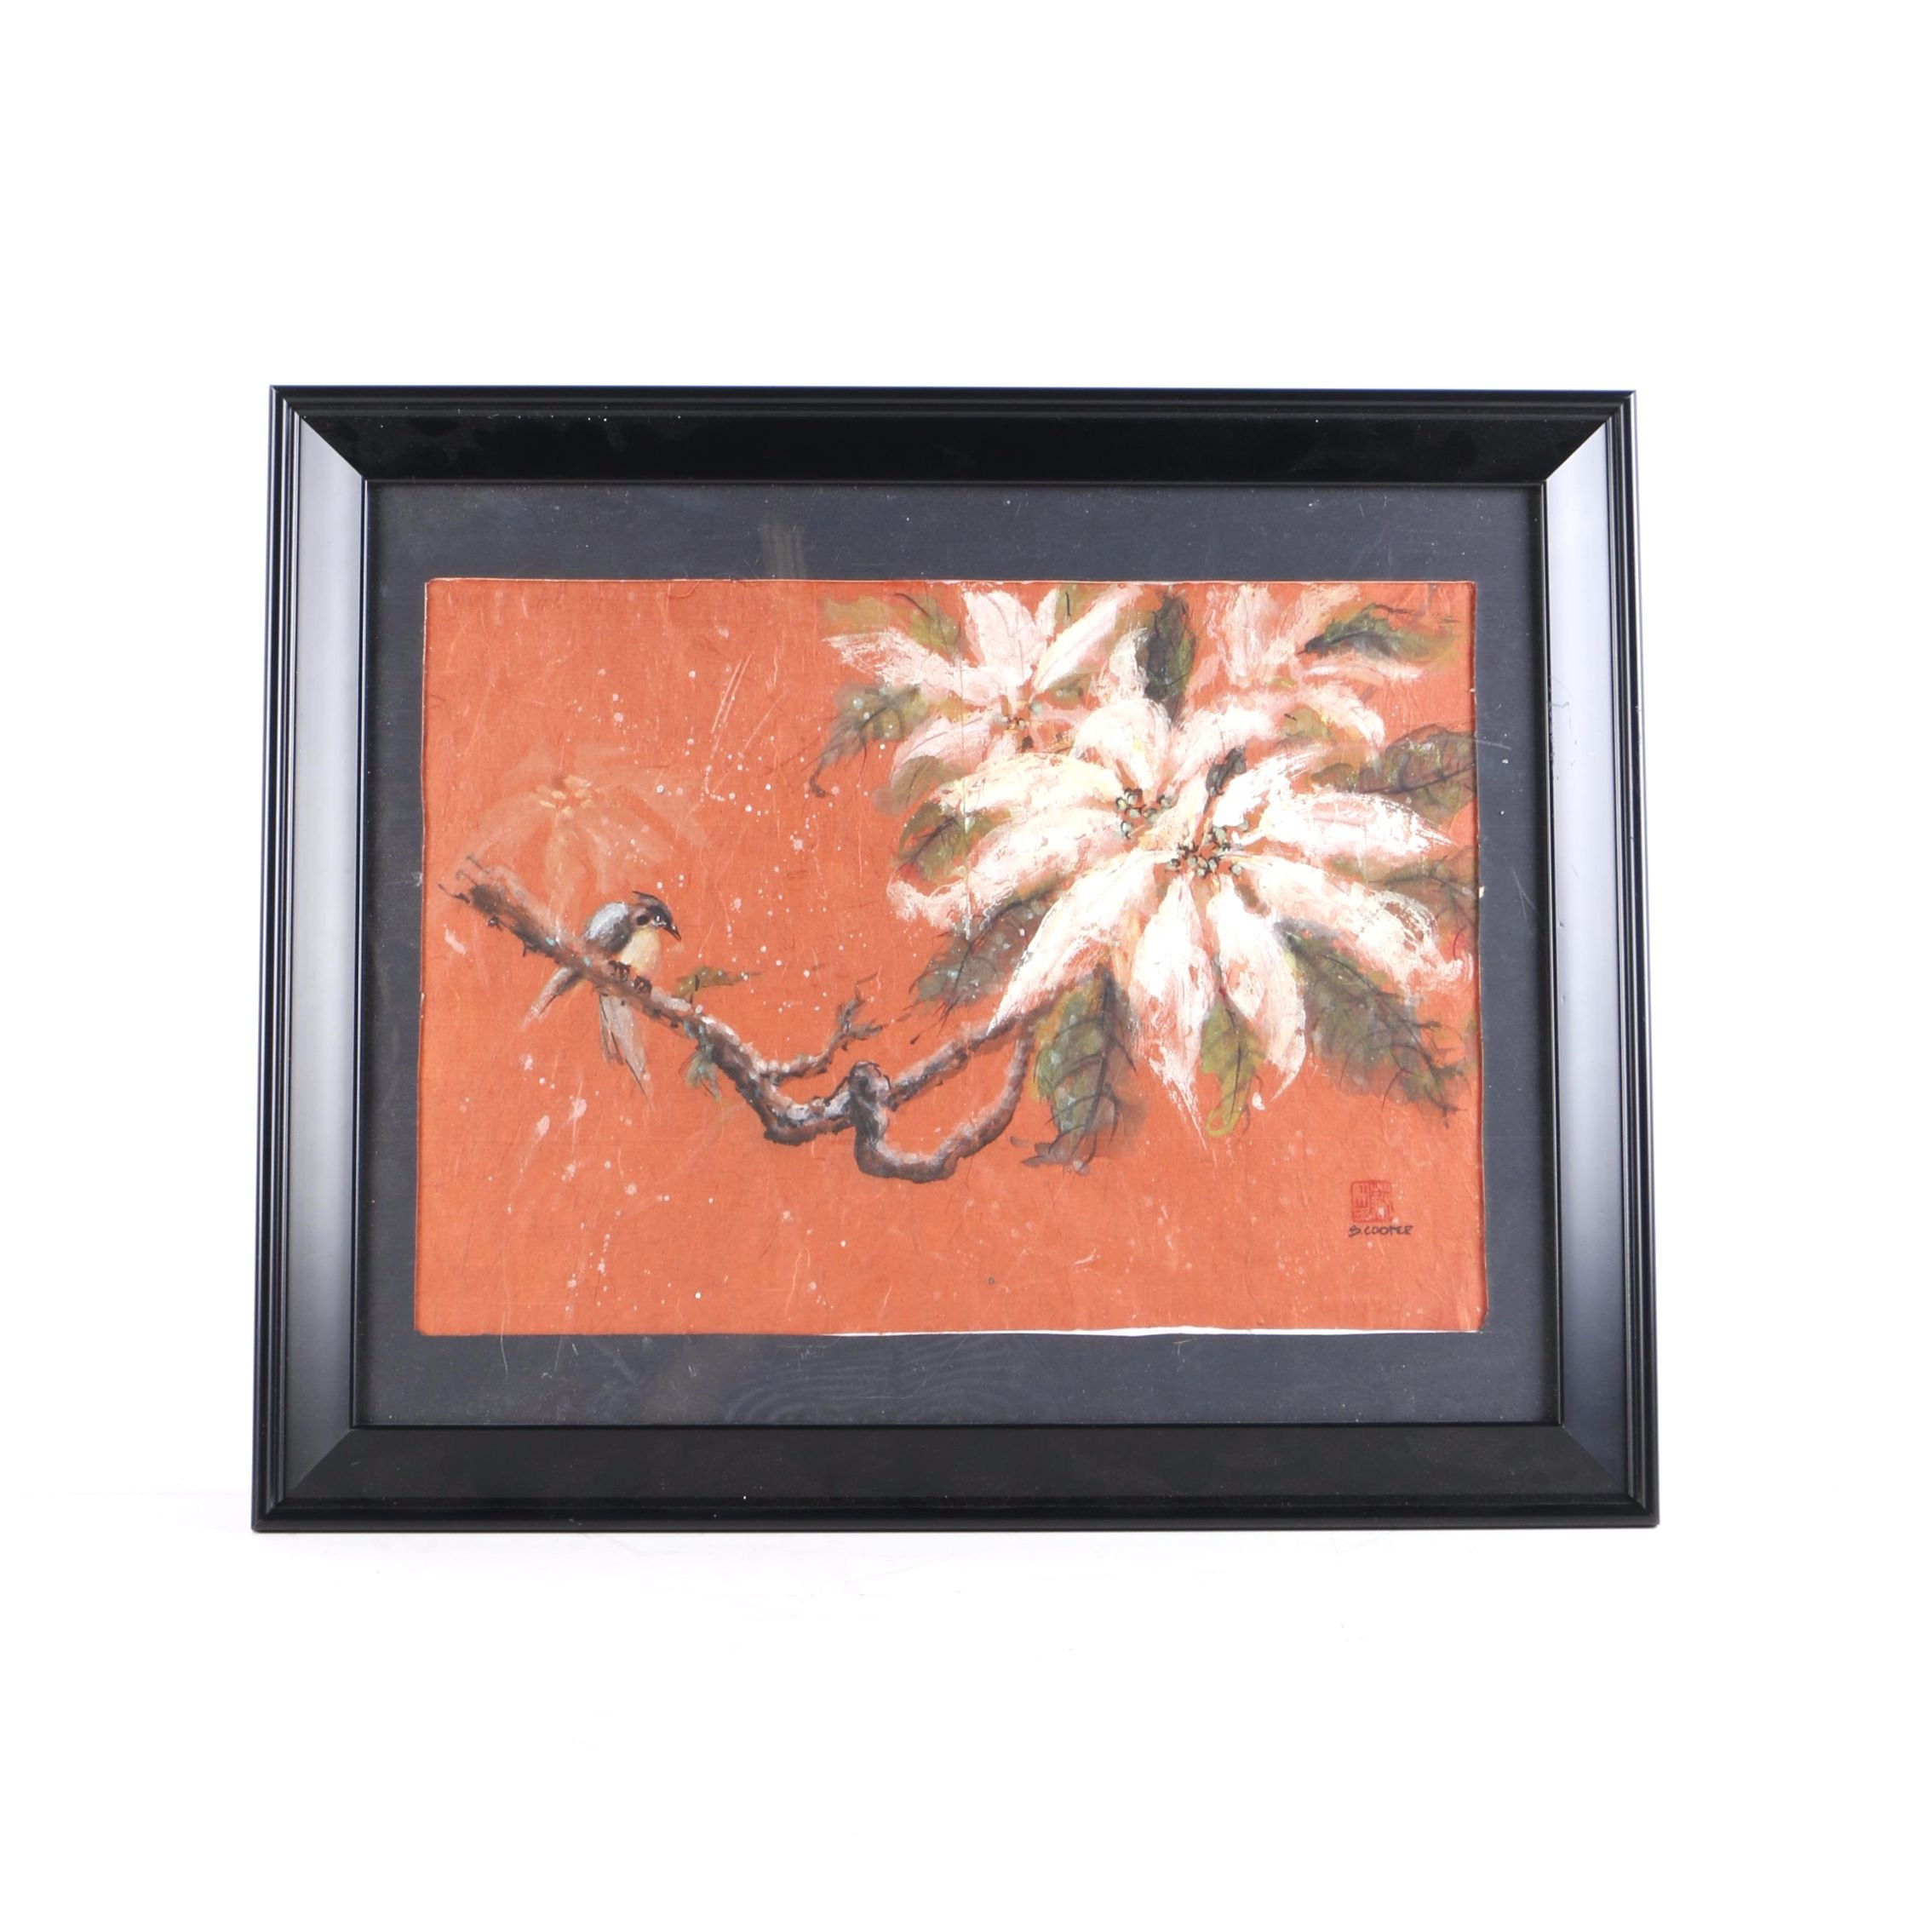 S. Cooper Watercolor and Goache on Red Textured Paper of a Blossoming Branch